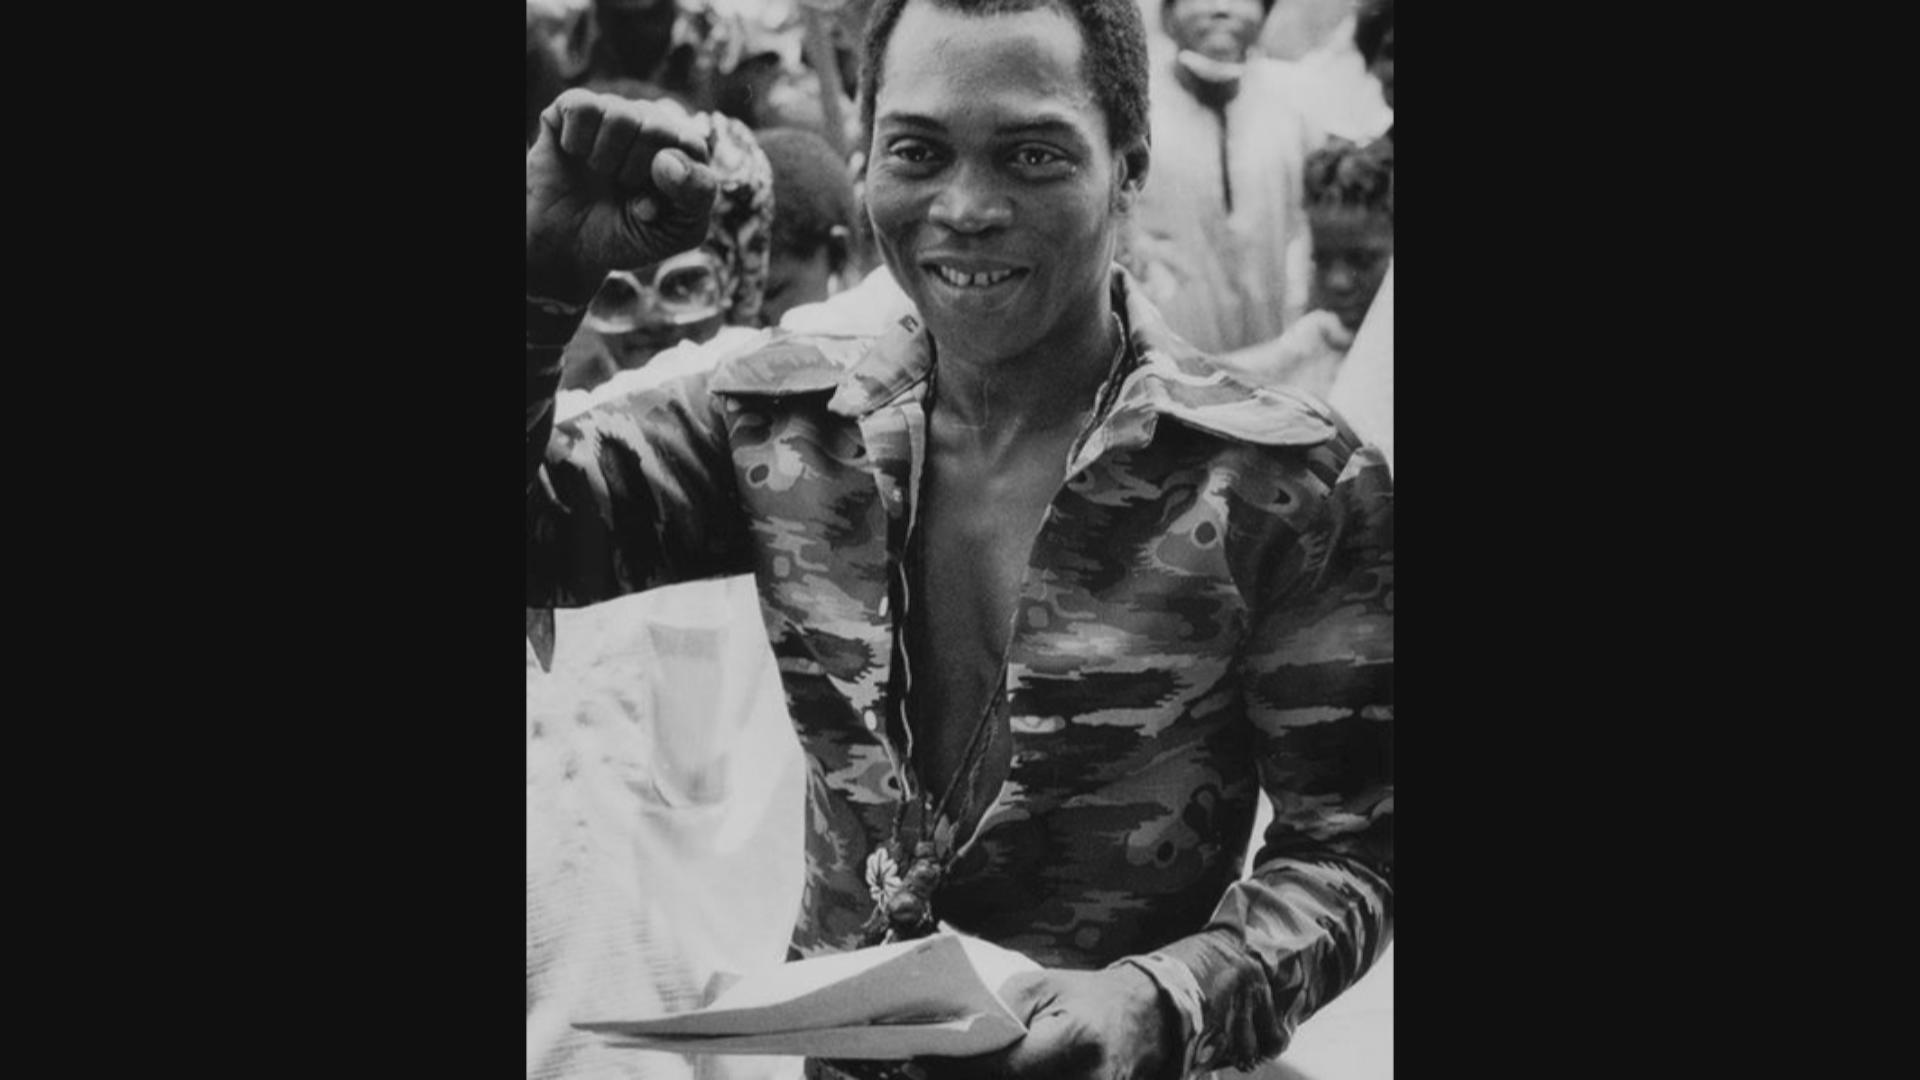 Fela Kuti Faces Of Africa Fela Kuti The Father Of Afrobeat Part